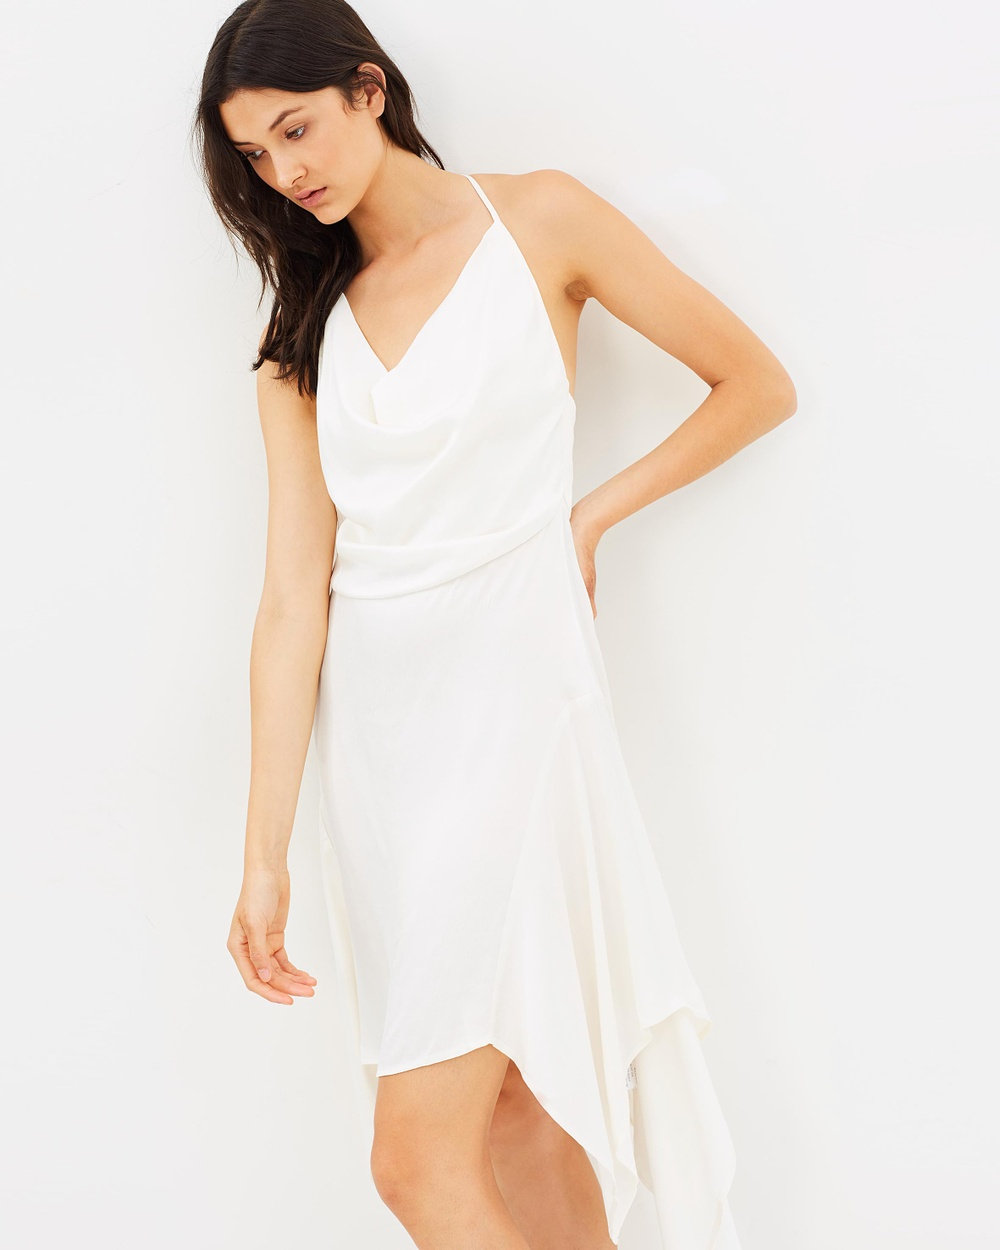 Airlie Monaco Cowl Neck Dress Dresses Cream Monaco Cowl Neck Dress